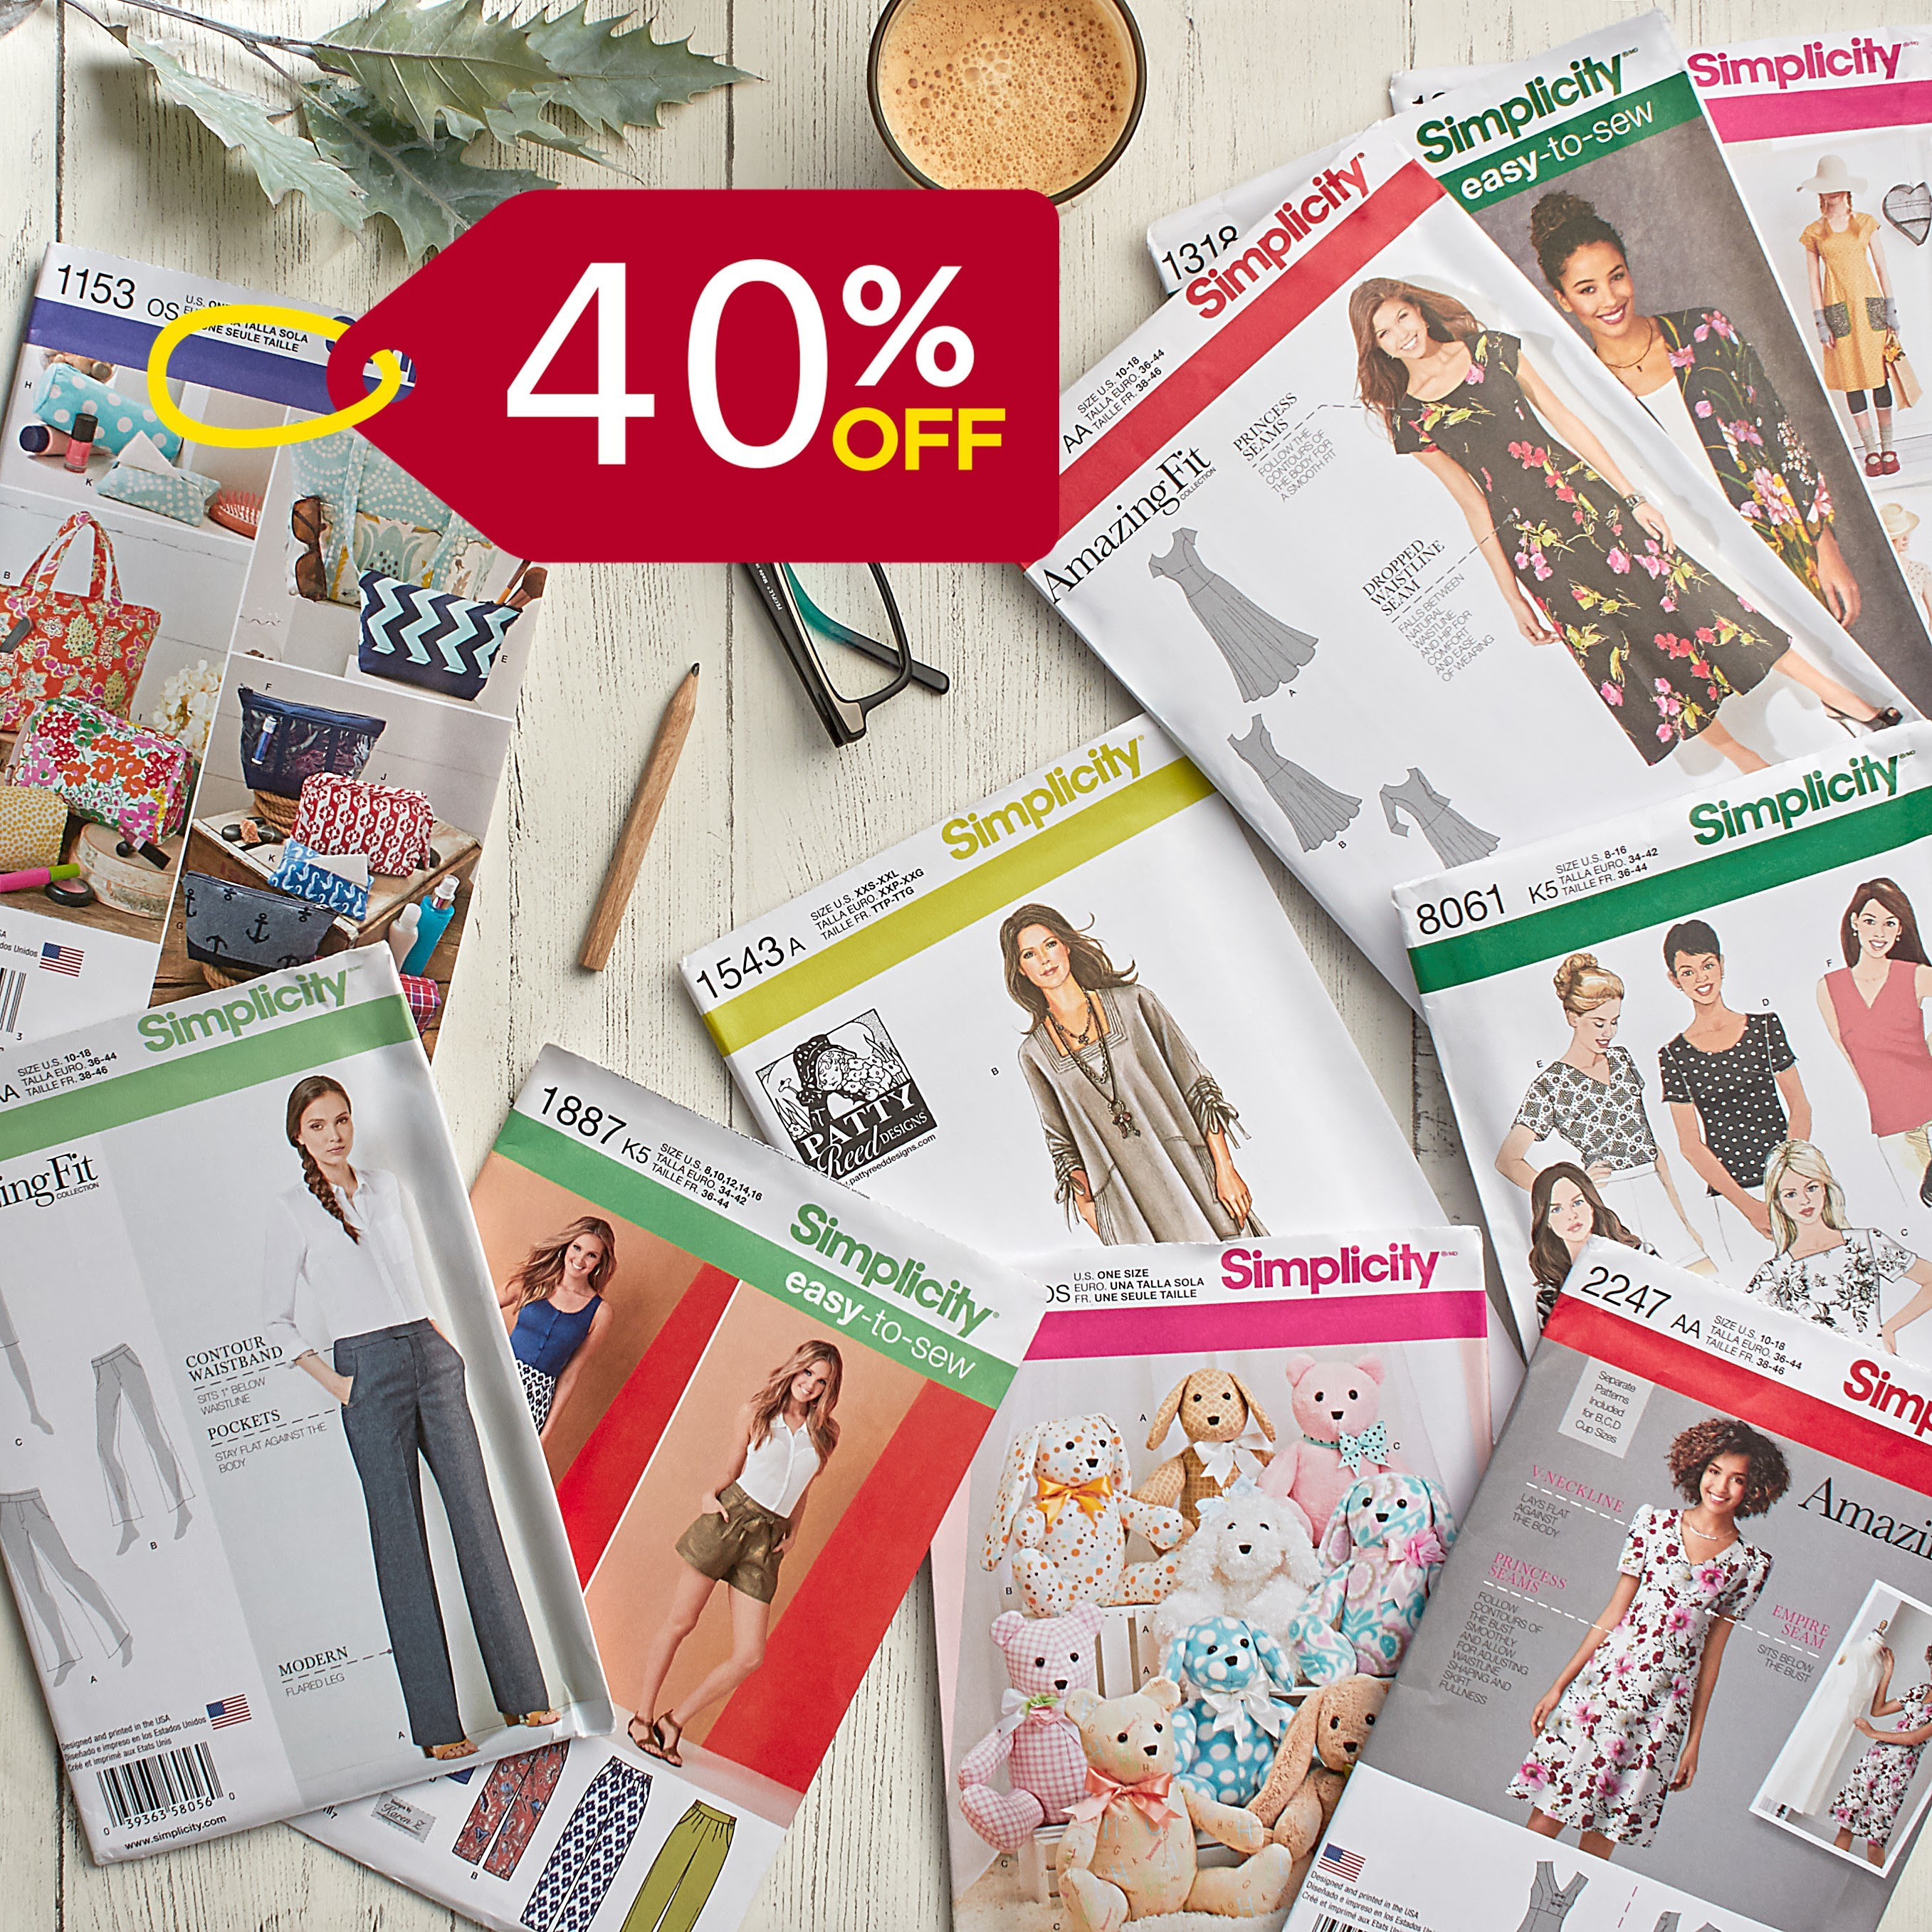 Save 40% off all Simplicity Patterns